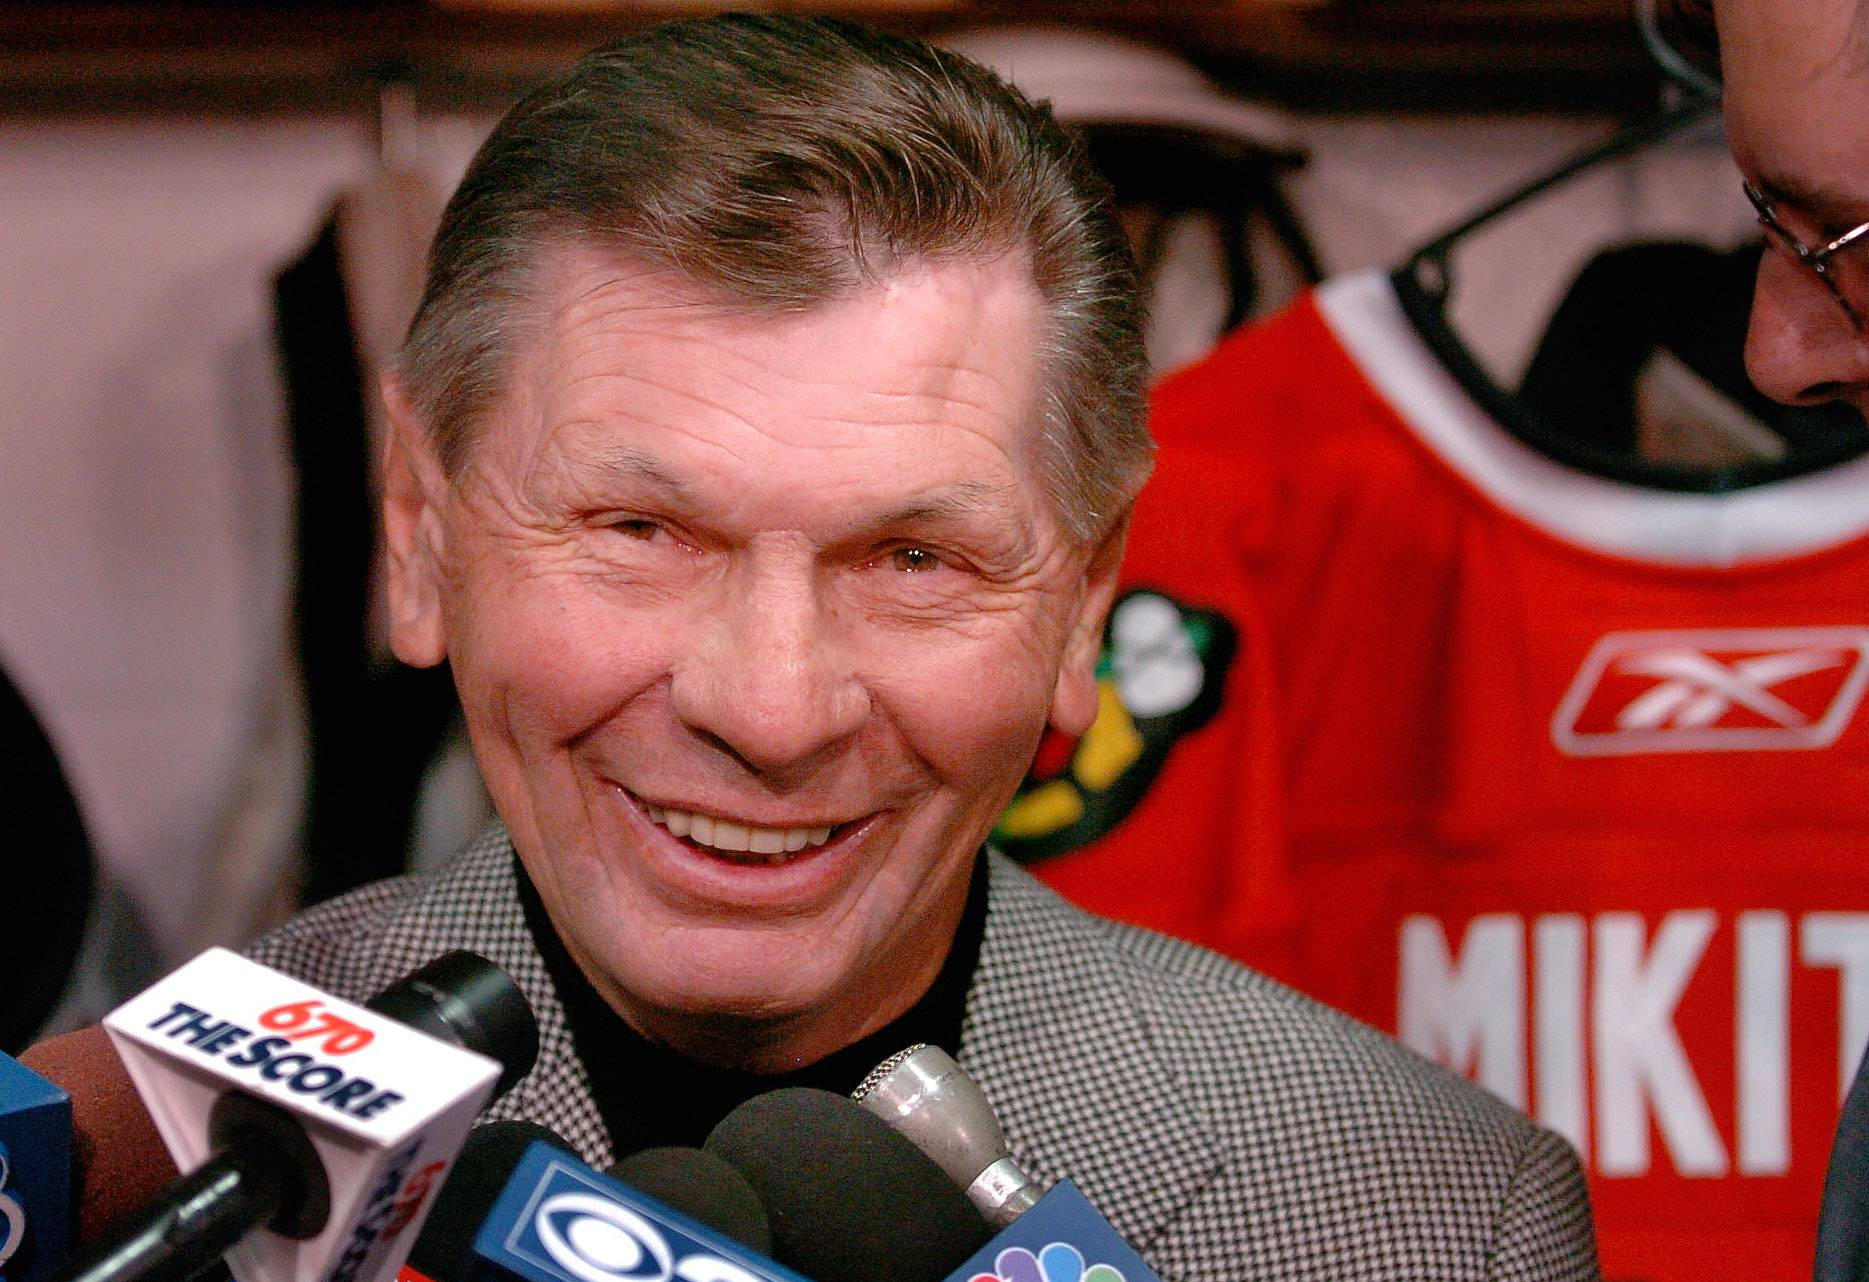 Stan Mikita was excited to return to the Blackhawks organization in 2008 as a team ambassador with Bobby Hull.